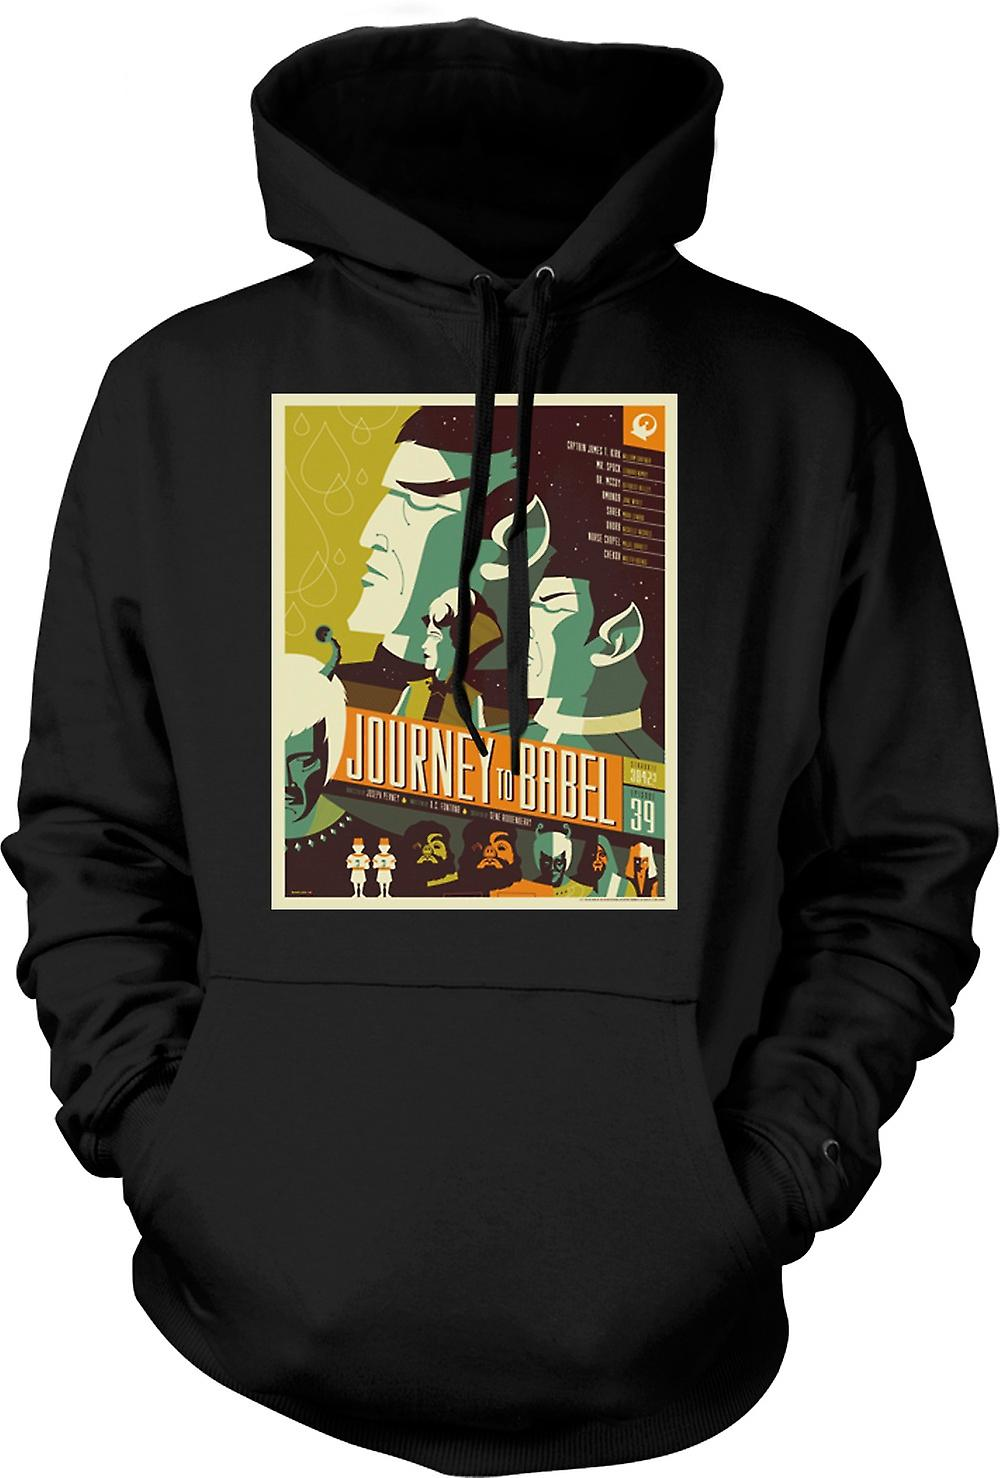 Mens Hoodie - Journey To Babel - Classic Star Trek